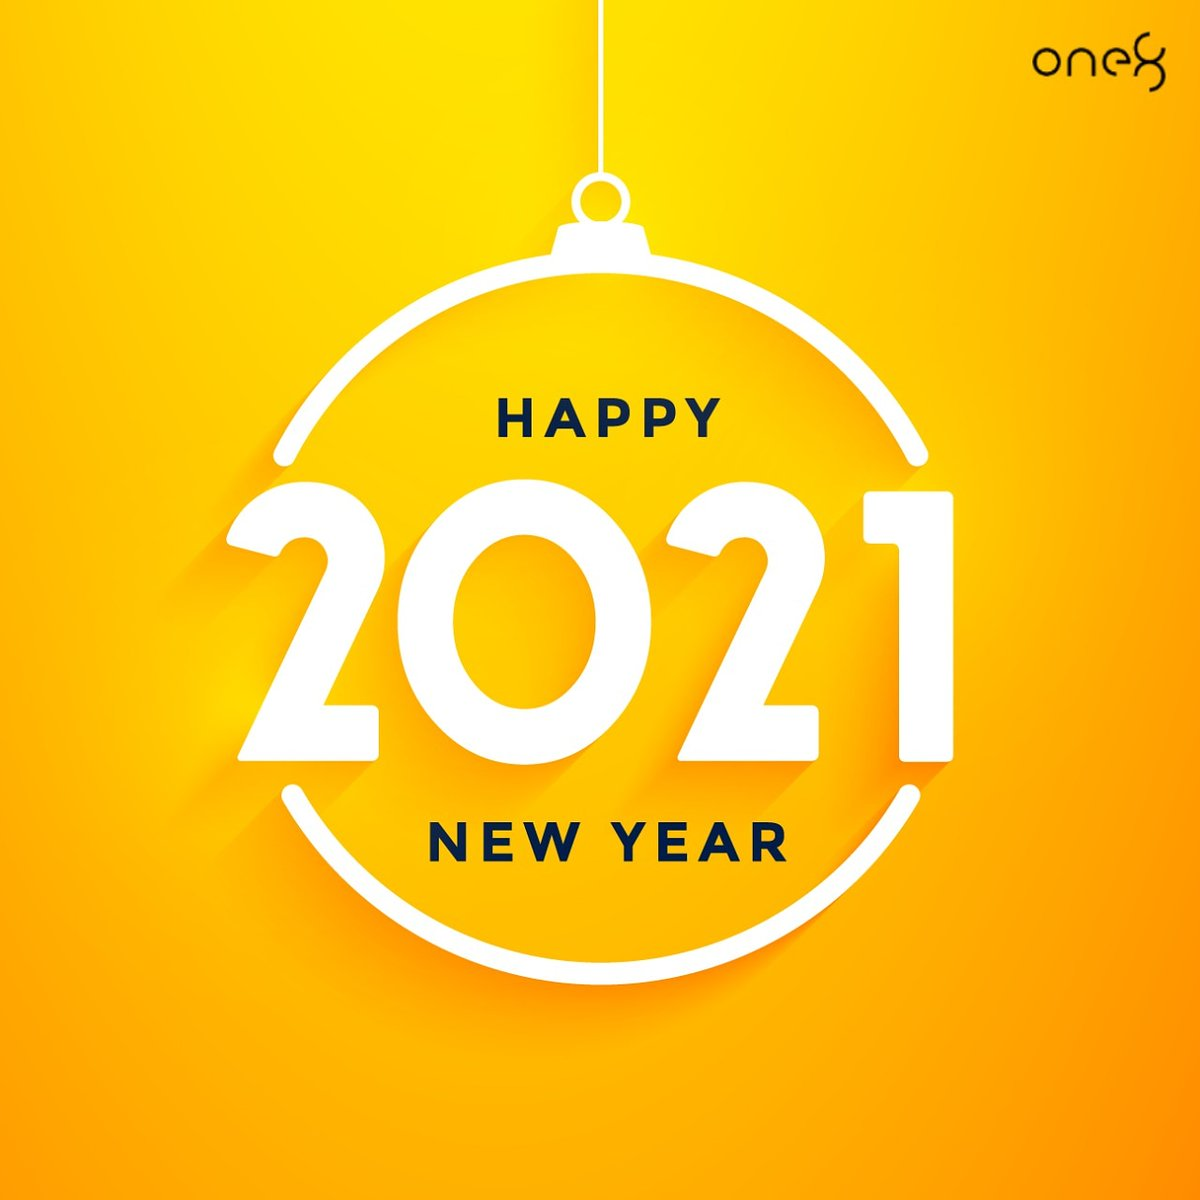 Wishing everyone a very happy, healthy and prosperous New Year 2021. #HappyNewYear 🎉 #one8